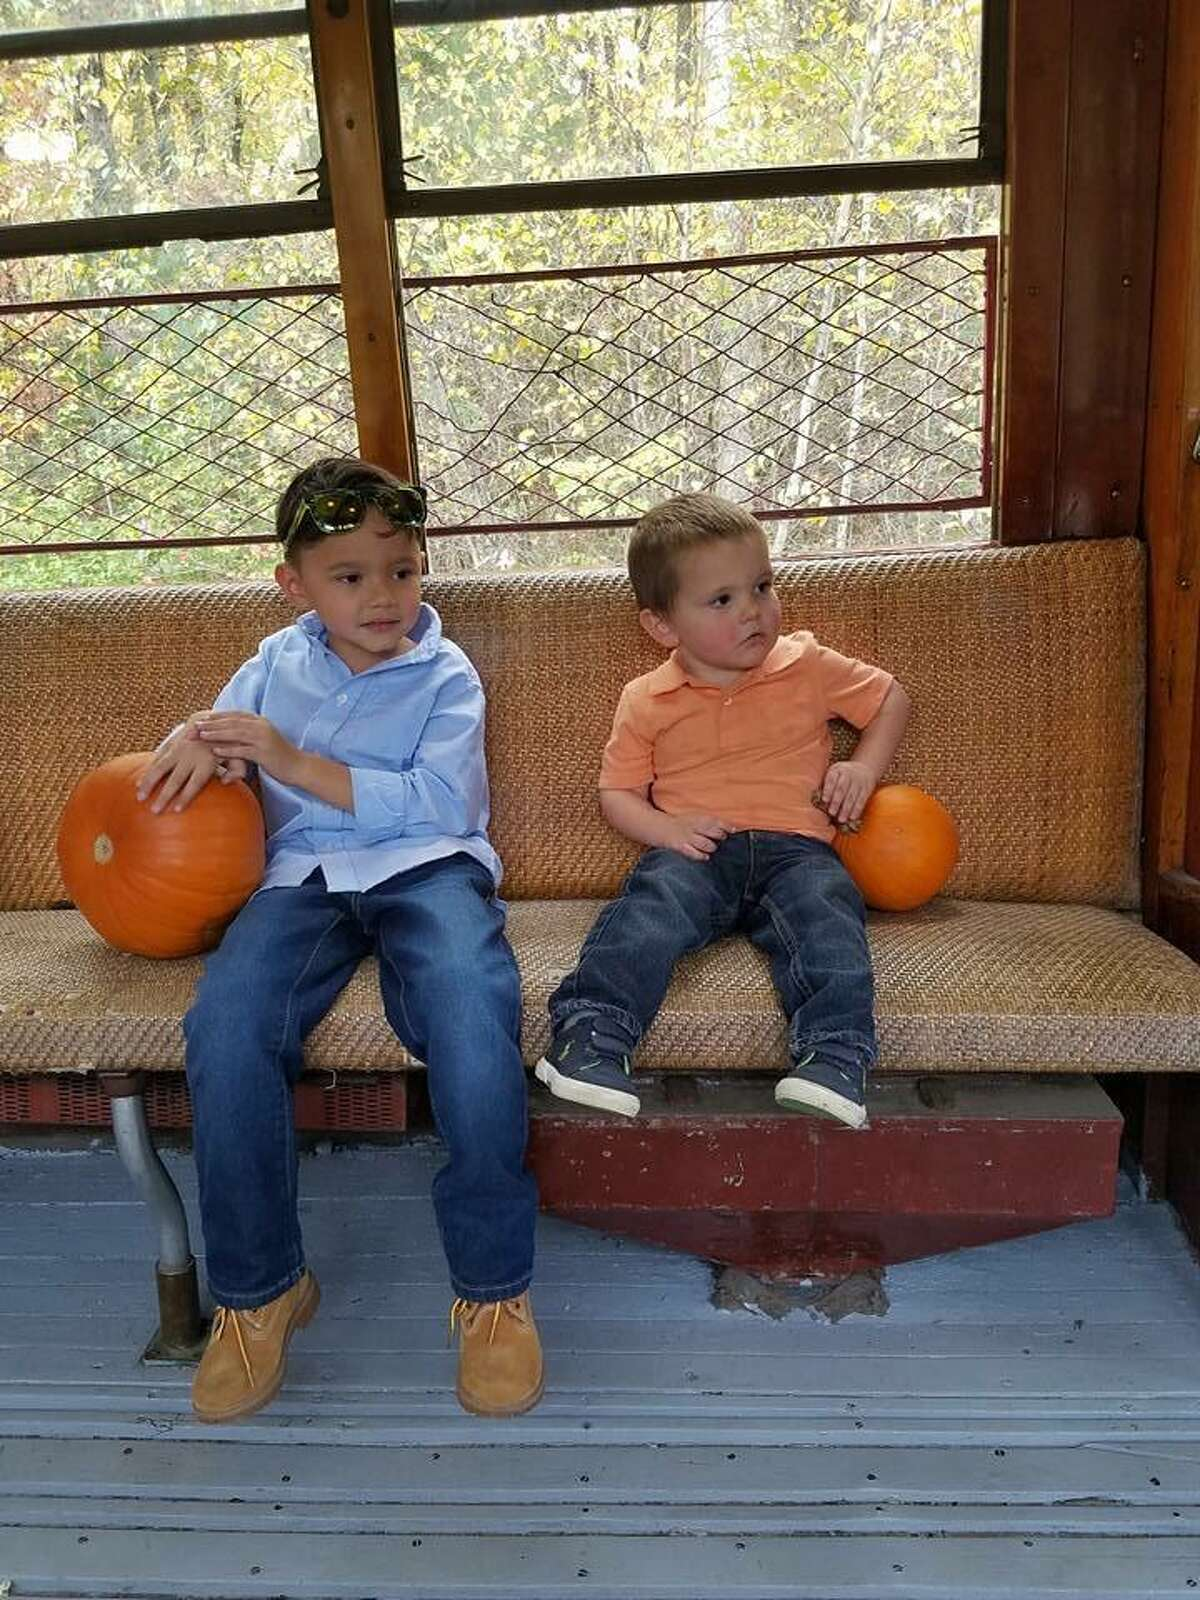 Connecticut Trolley Museum in East Windsor will once again be hosting its Pumpkin Patch Trolley, beginning Sept. 24.